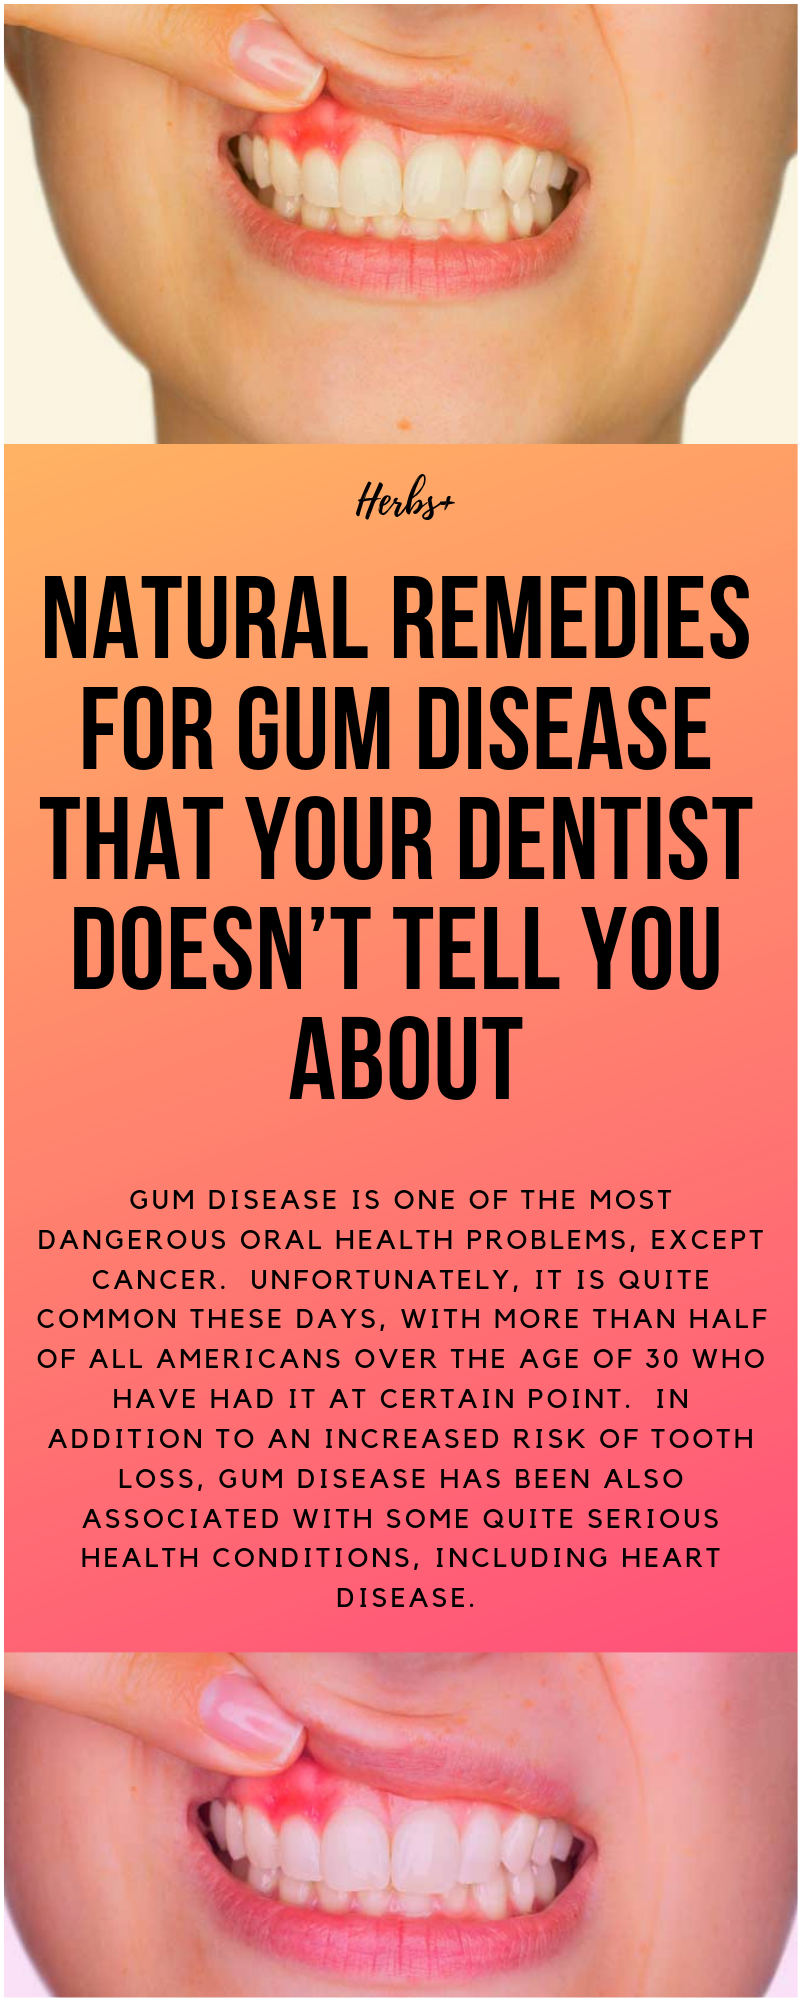 Gum disease is one of the most dangerous oral health problems, except cancer.  Unfortunately, it is quite common these days, with more than half of all Americans over the age of 30 who have had it at certain point.  In addition to an increased risk of tooth loss, gum disease has been also associated with some quite serious health conditions, including heart disease.